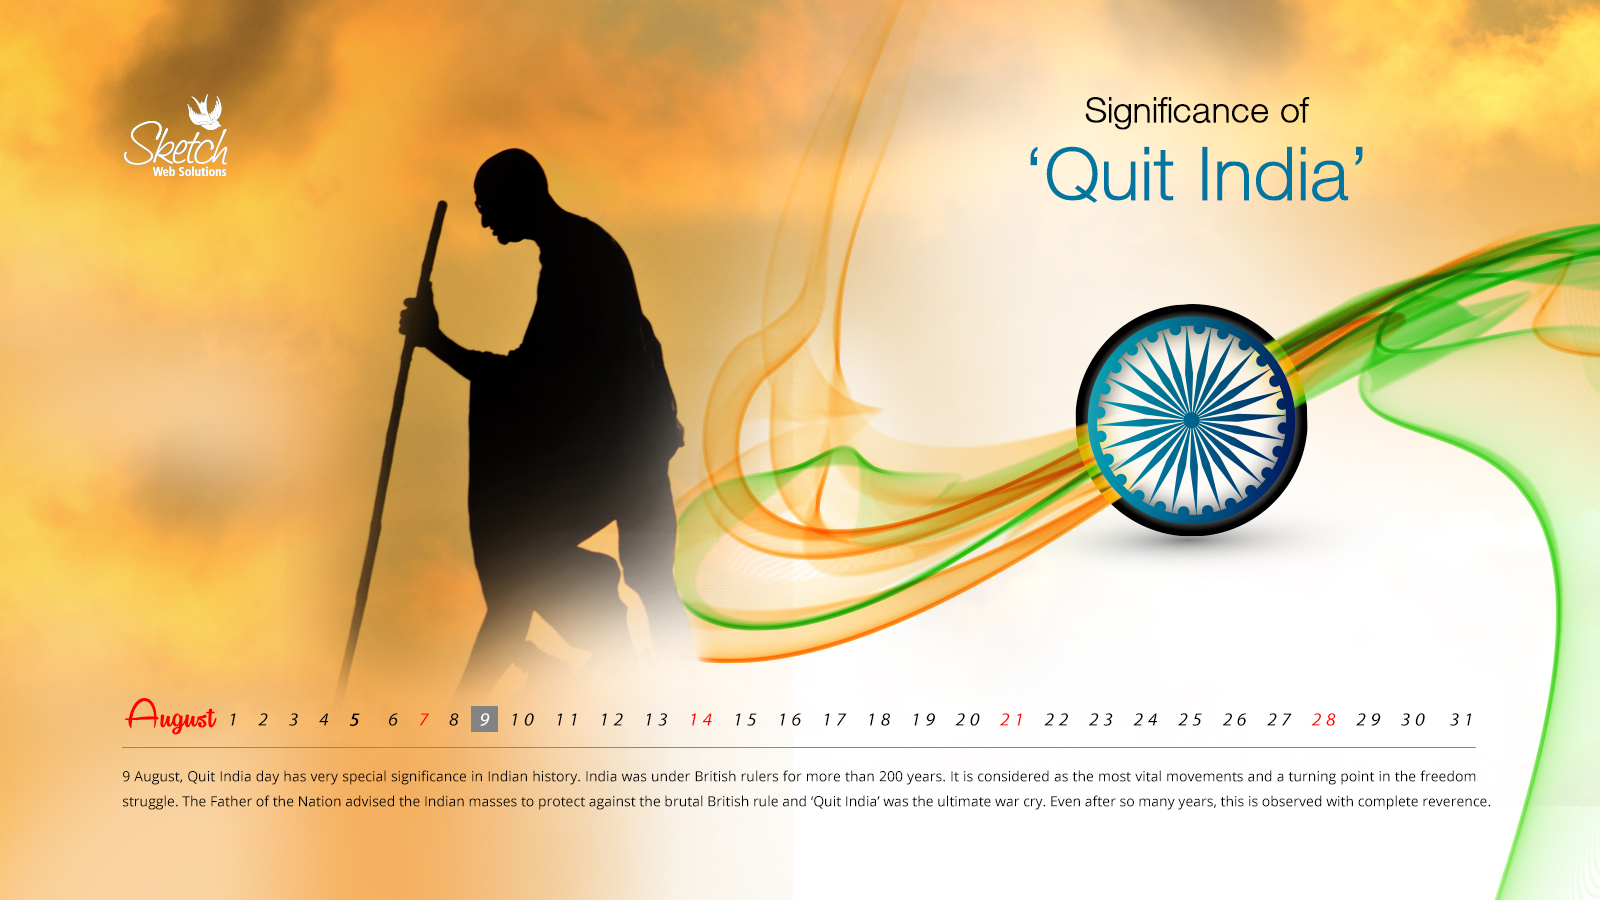 Significance of Quit India